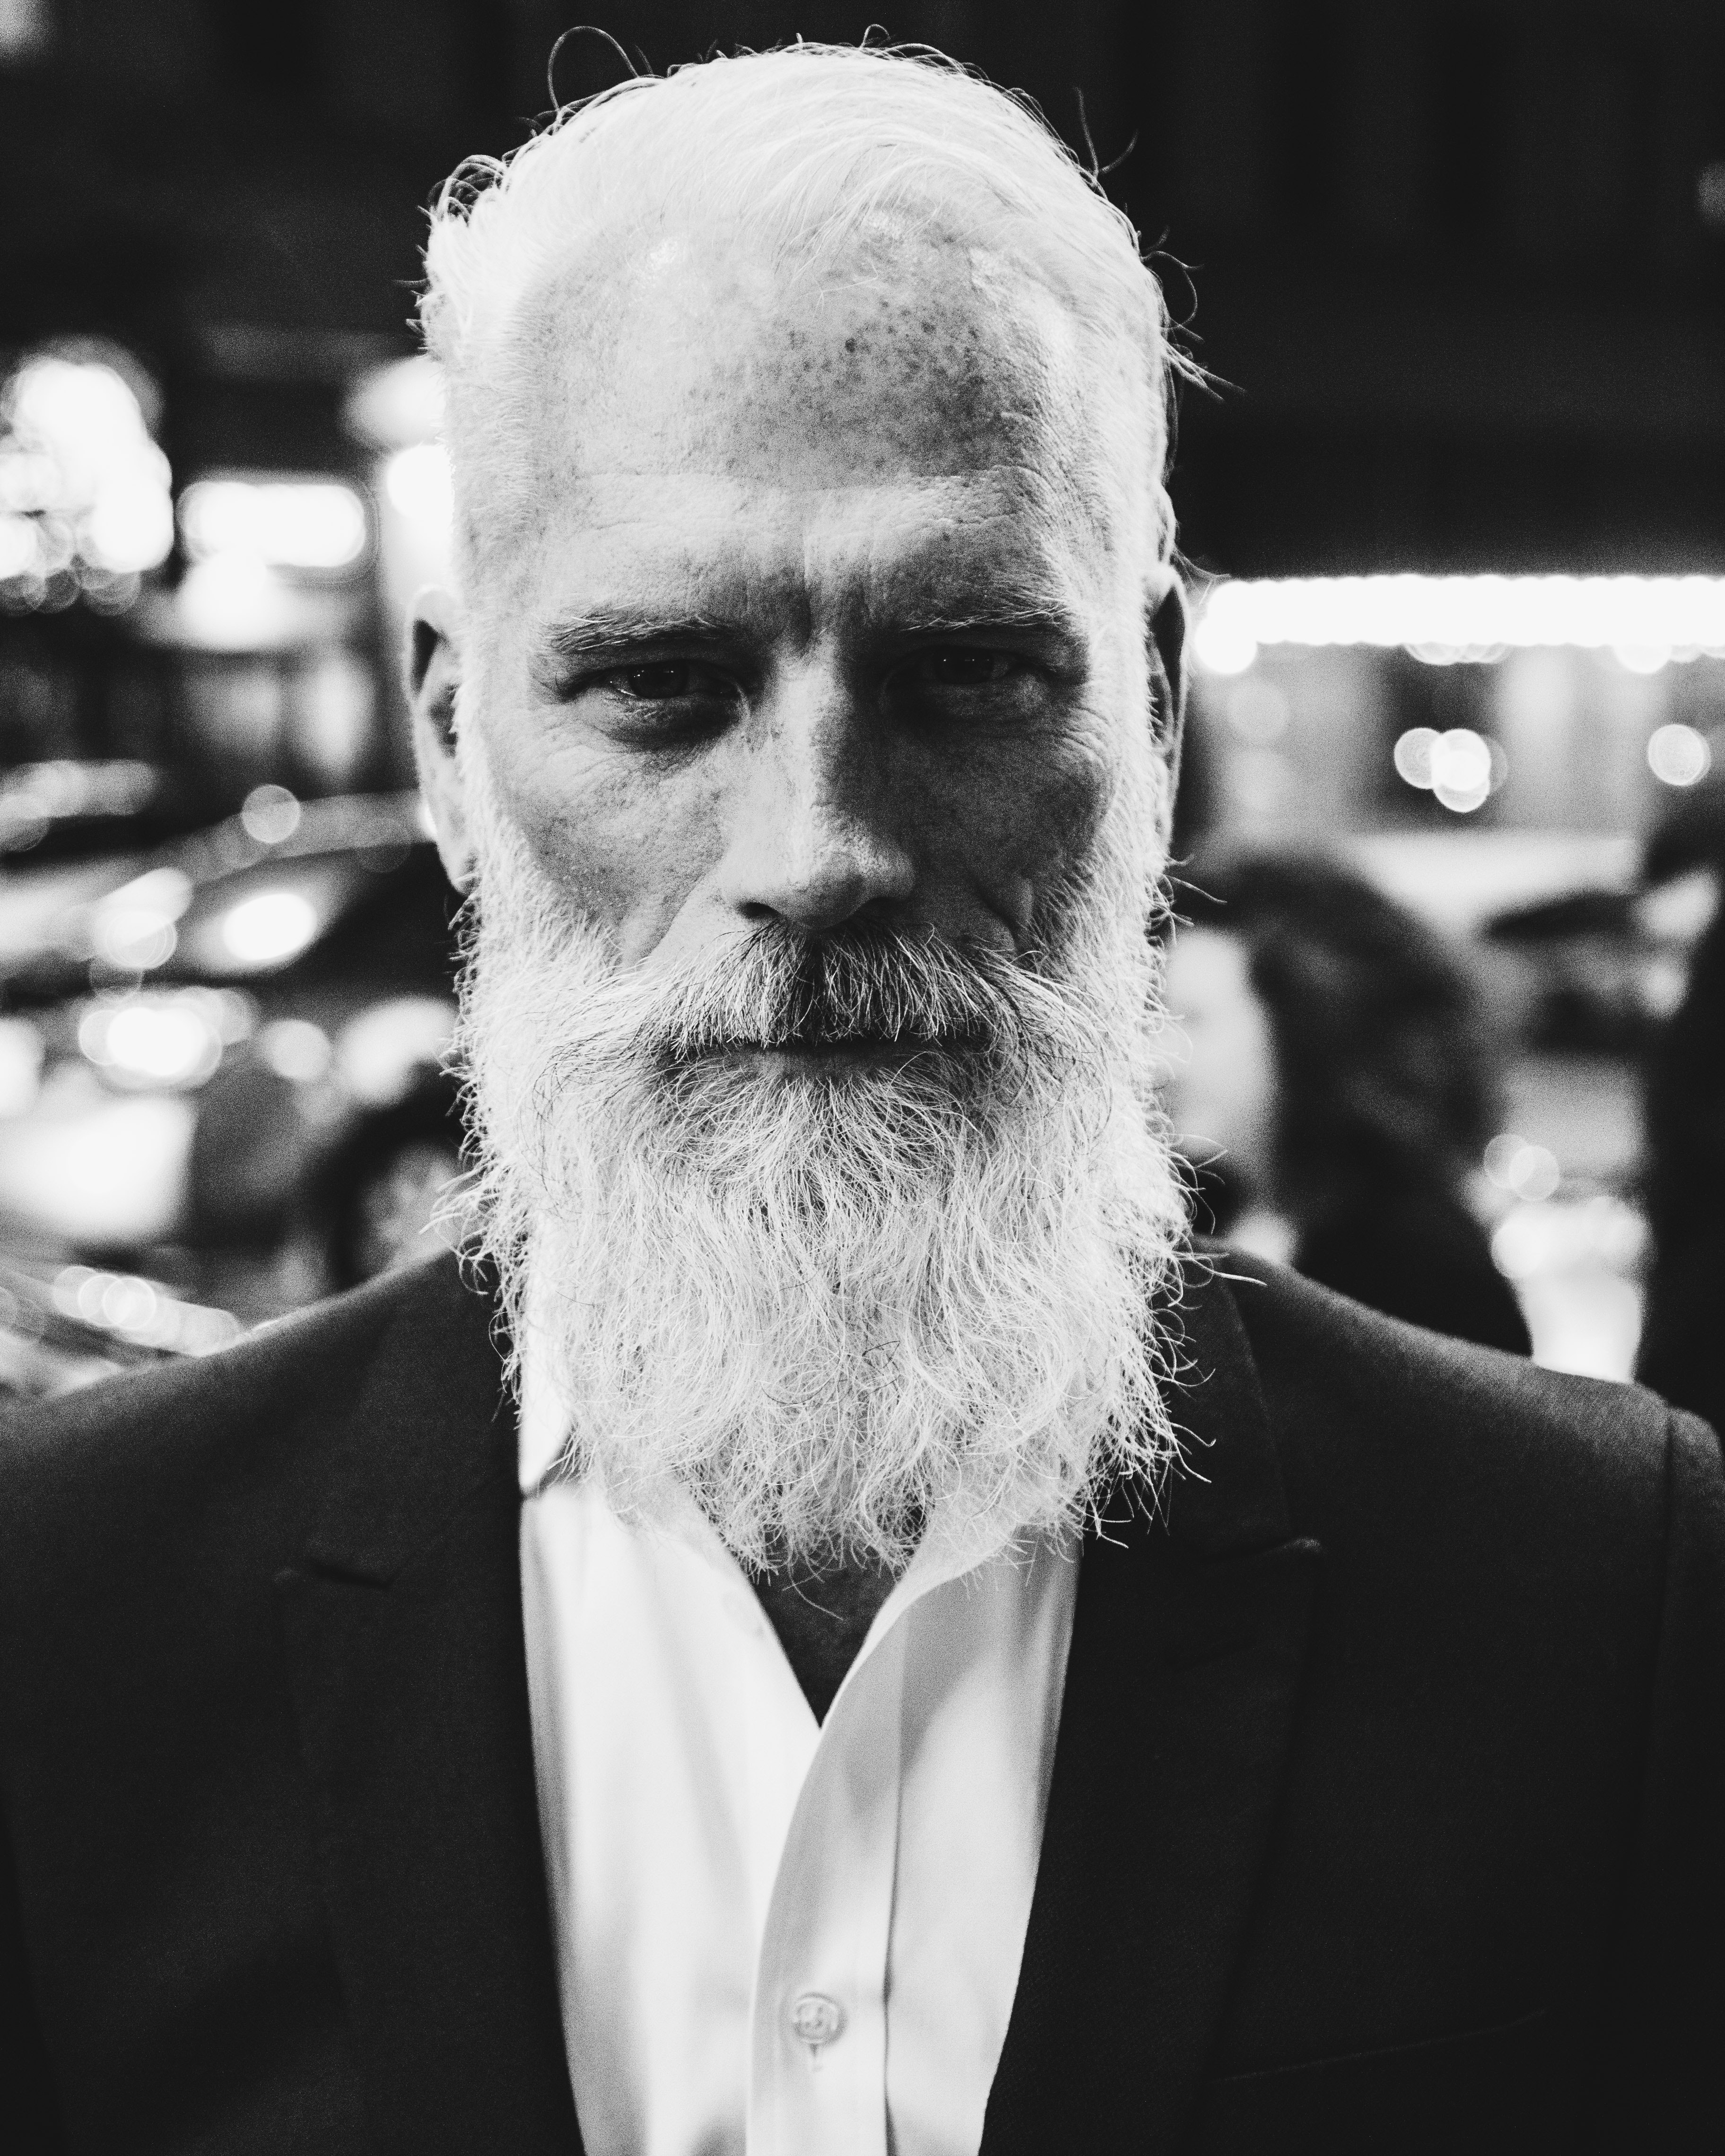 Black and white shot of attractive older man with white beard in blazer and shirt, Toronto